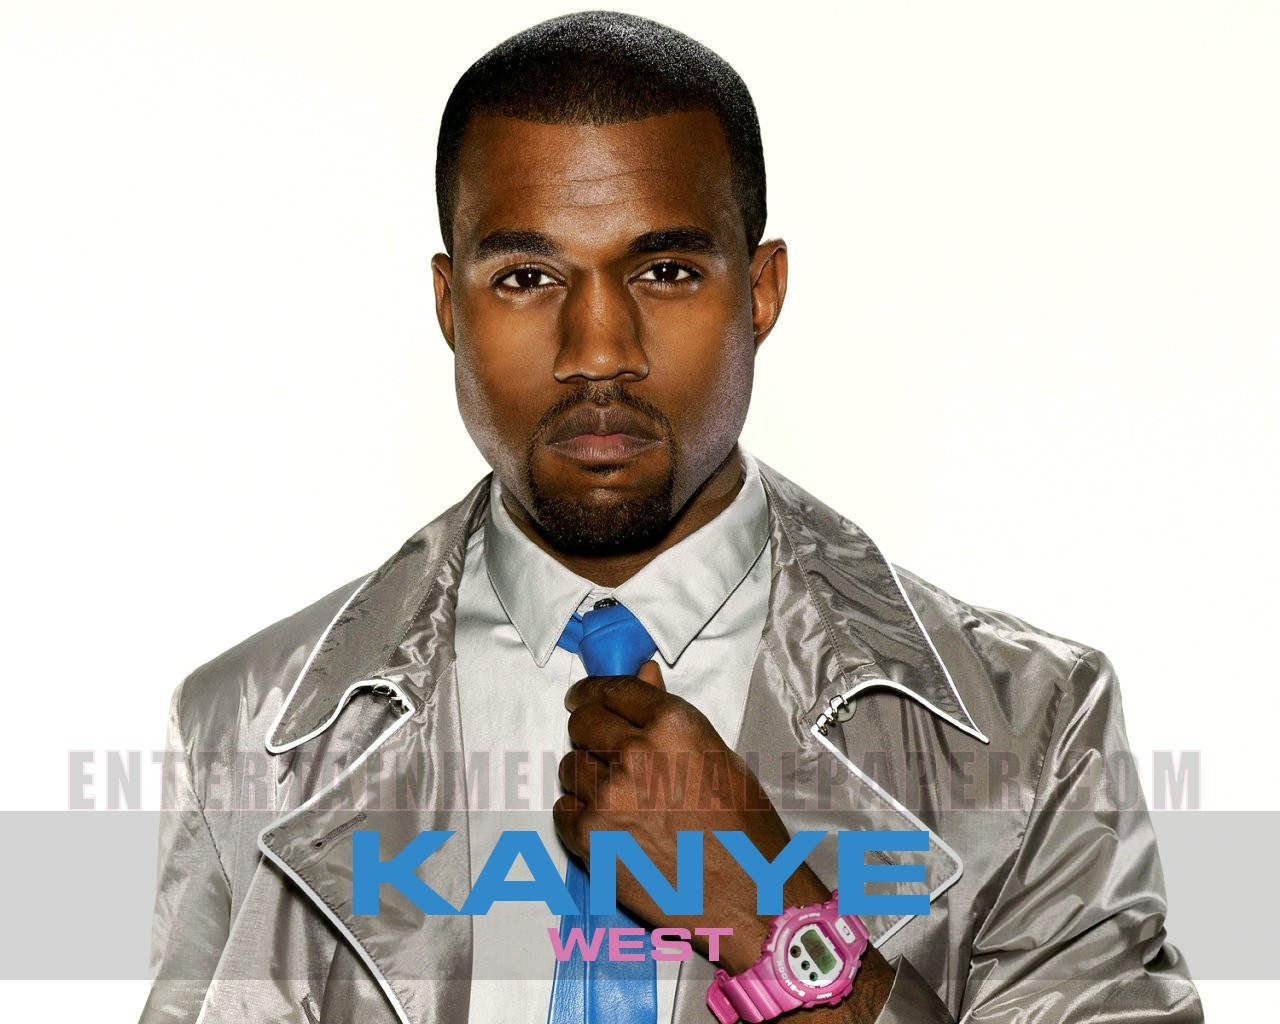 Kanye West Wallpaper 39809